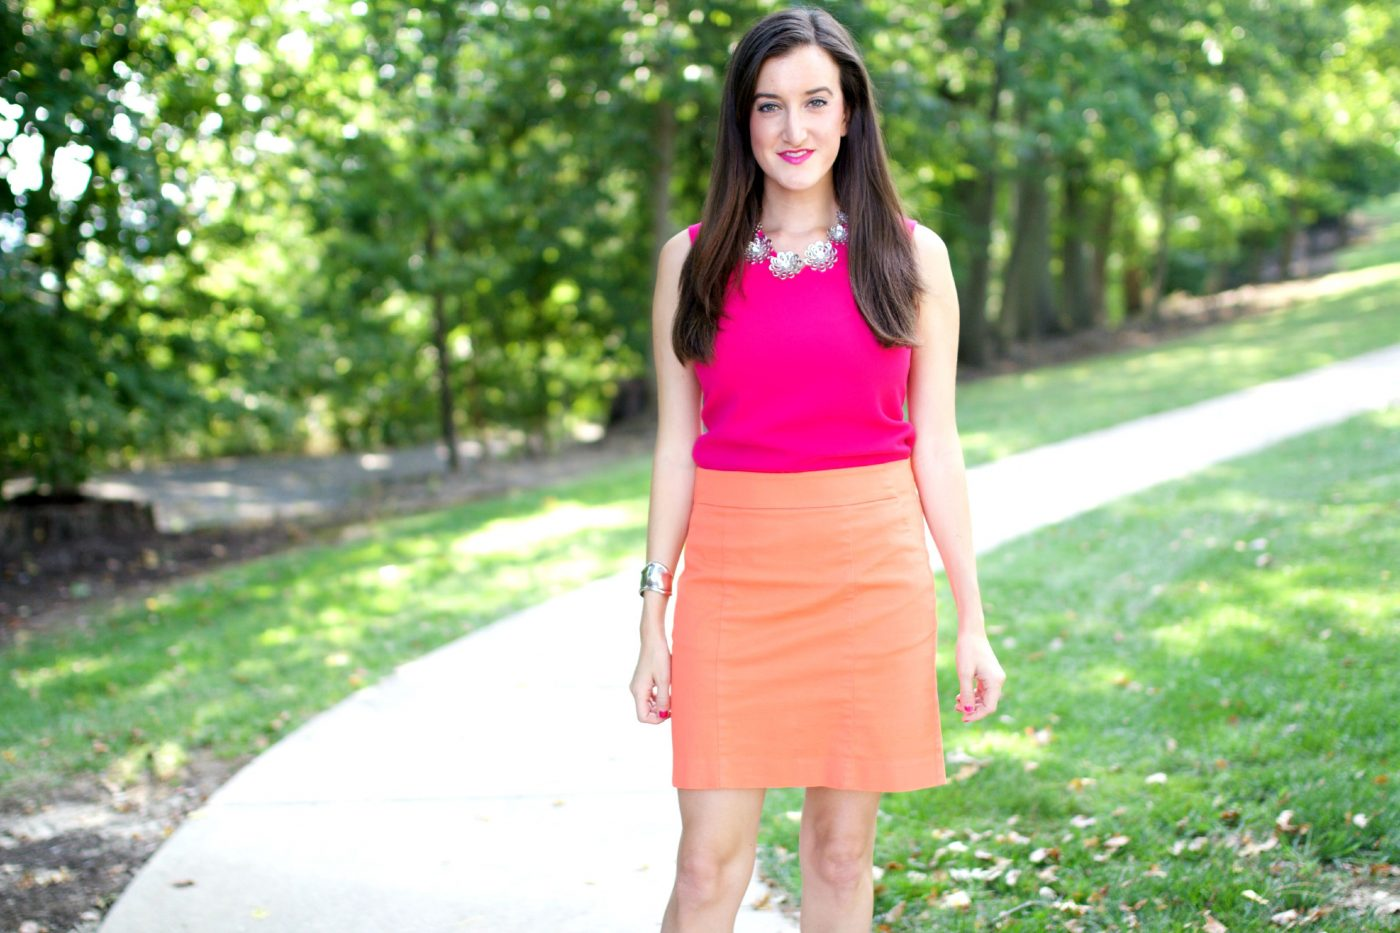 Colorblocked orange and pink outfit